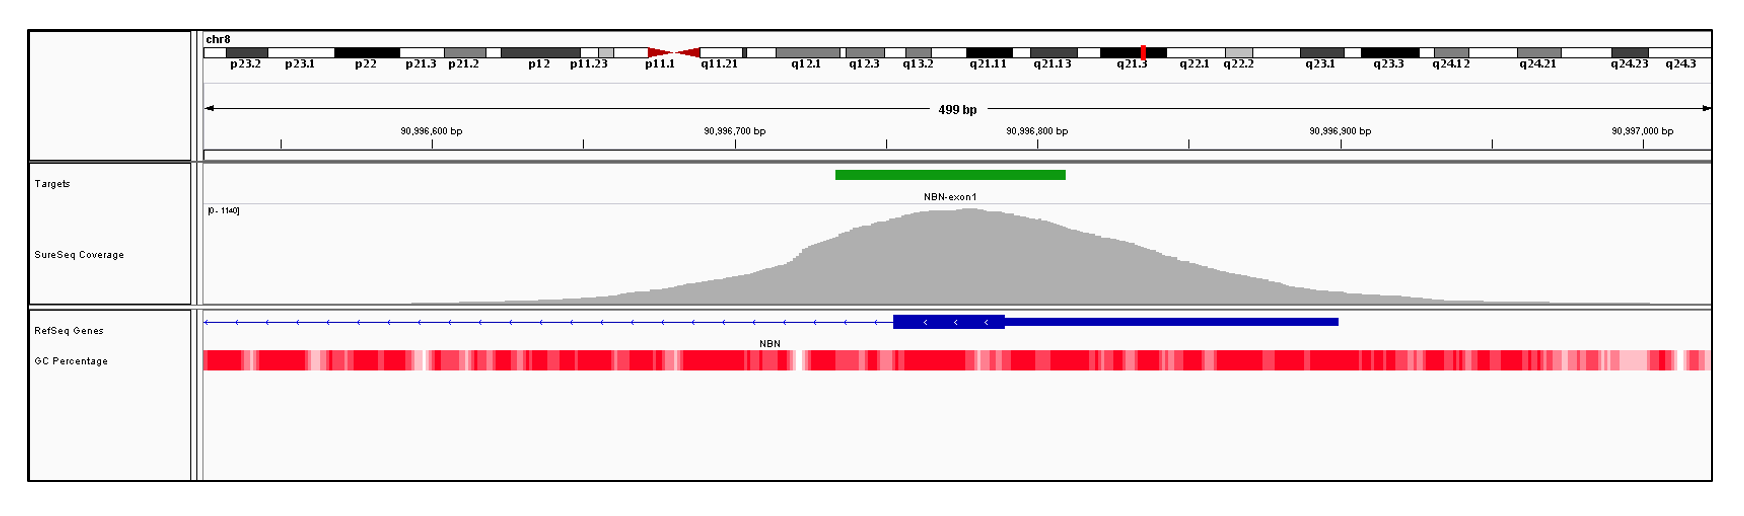 NBN Exon 1 (hg19 chr8:90996753-90996899). Depth of coverage per base (grey). Targeted region (green). Gene coding region as defined by RefSeq (blue). GC percentage (red). Image